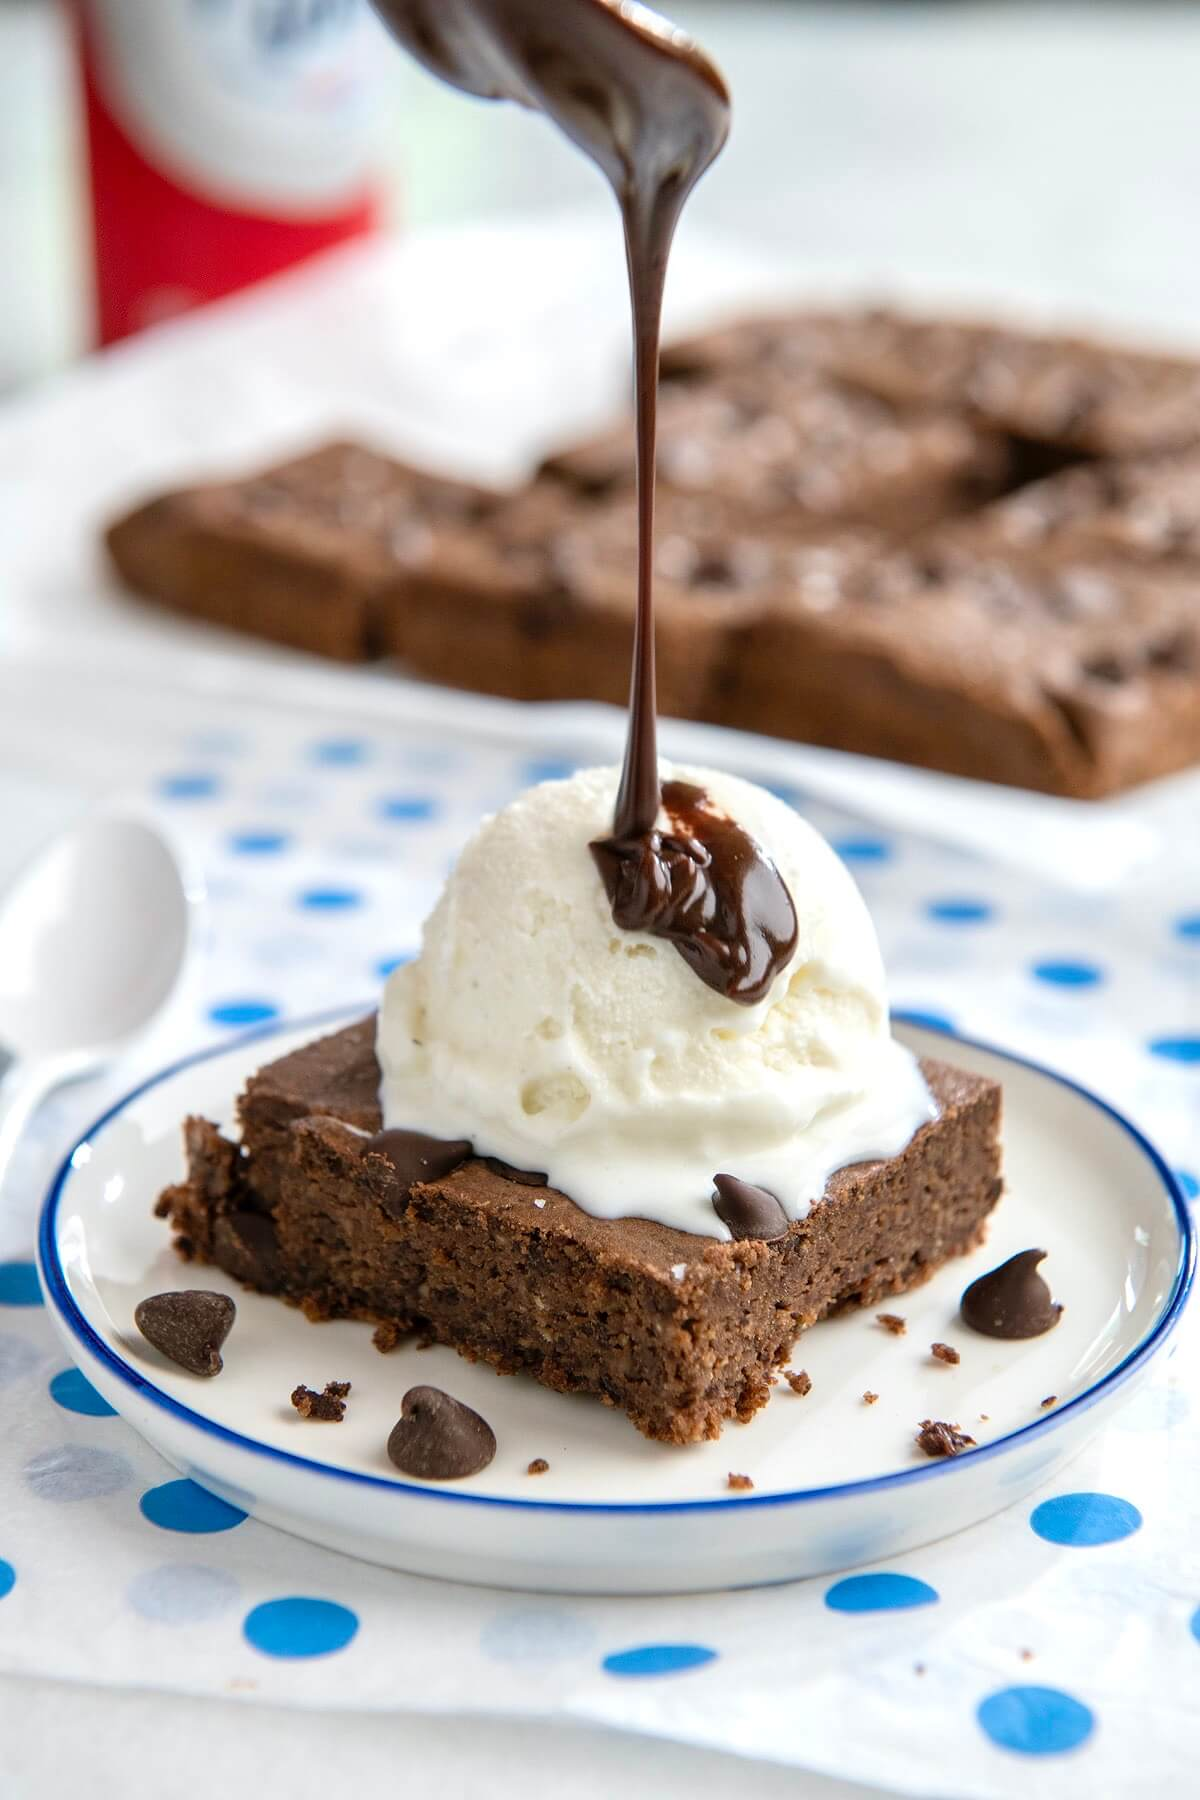 Decadent, fudgy brownies score big points in flavor and texture while delivering a filling dose of fiber and protein. A total dessert win!